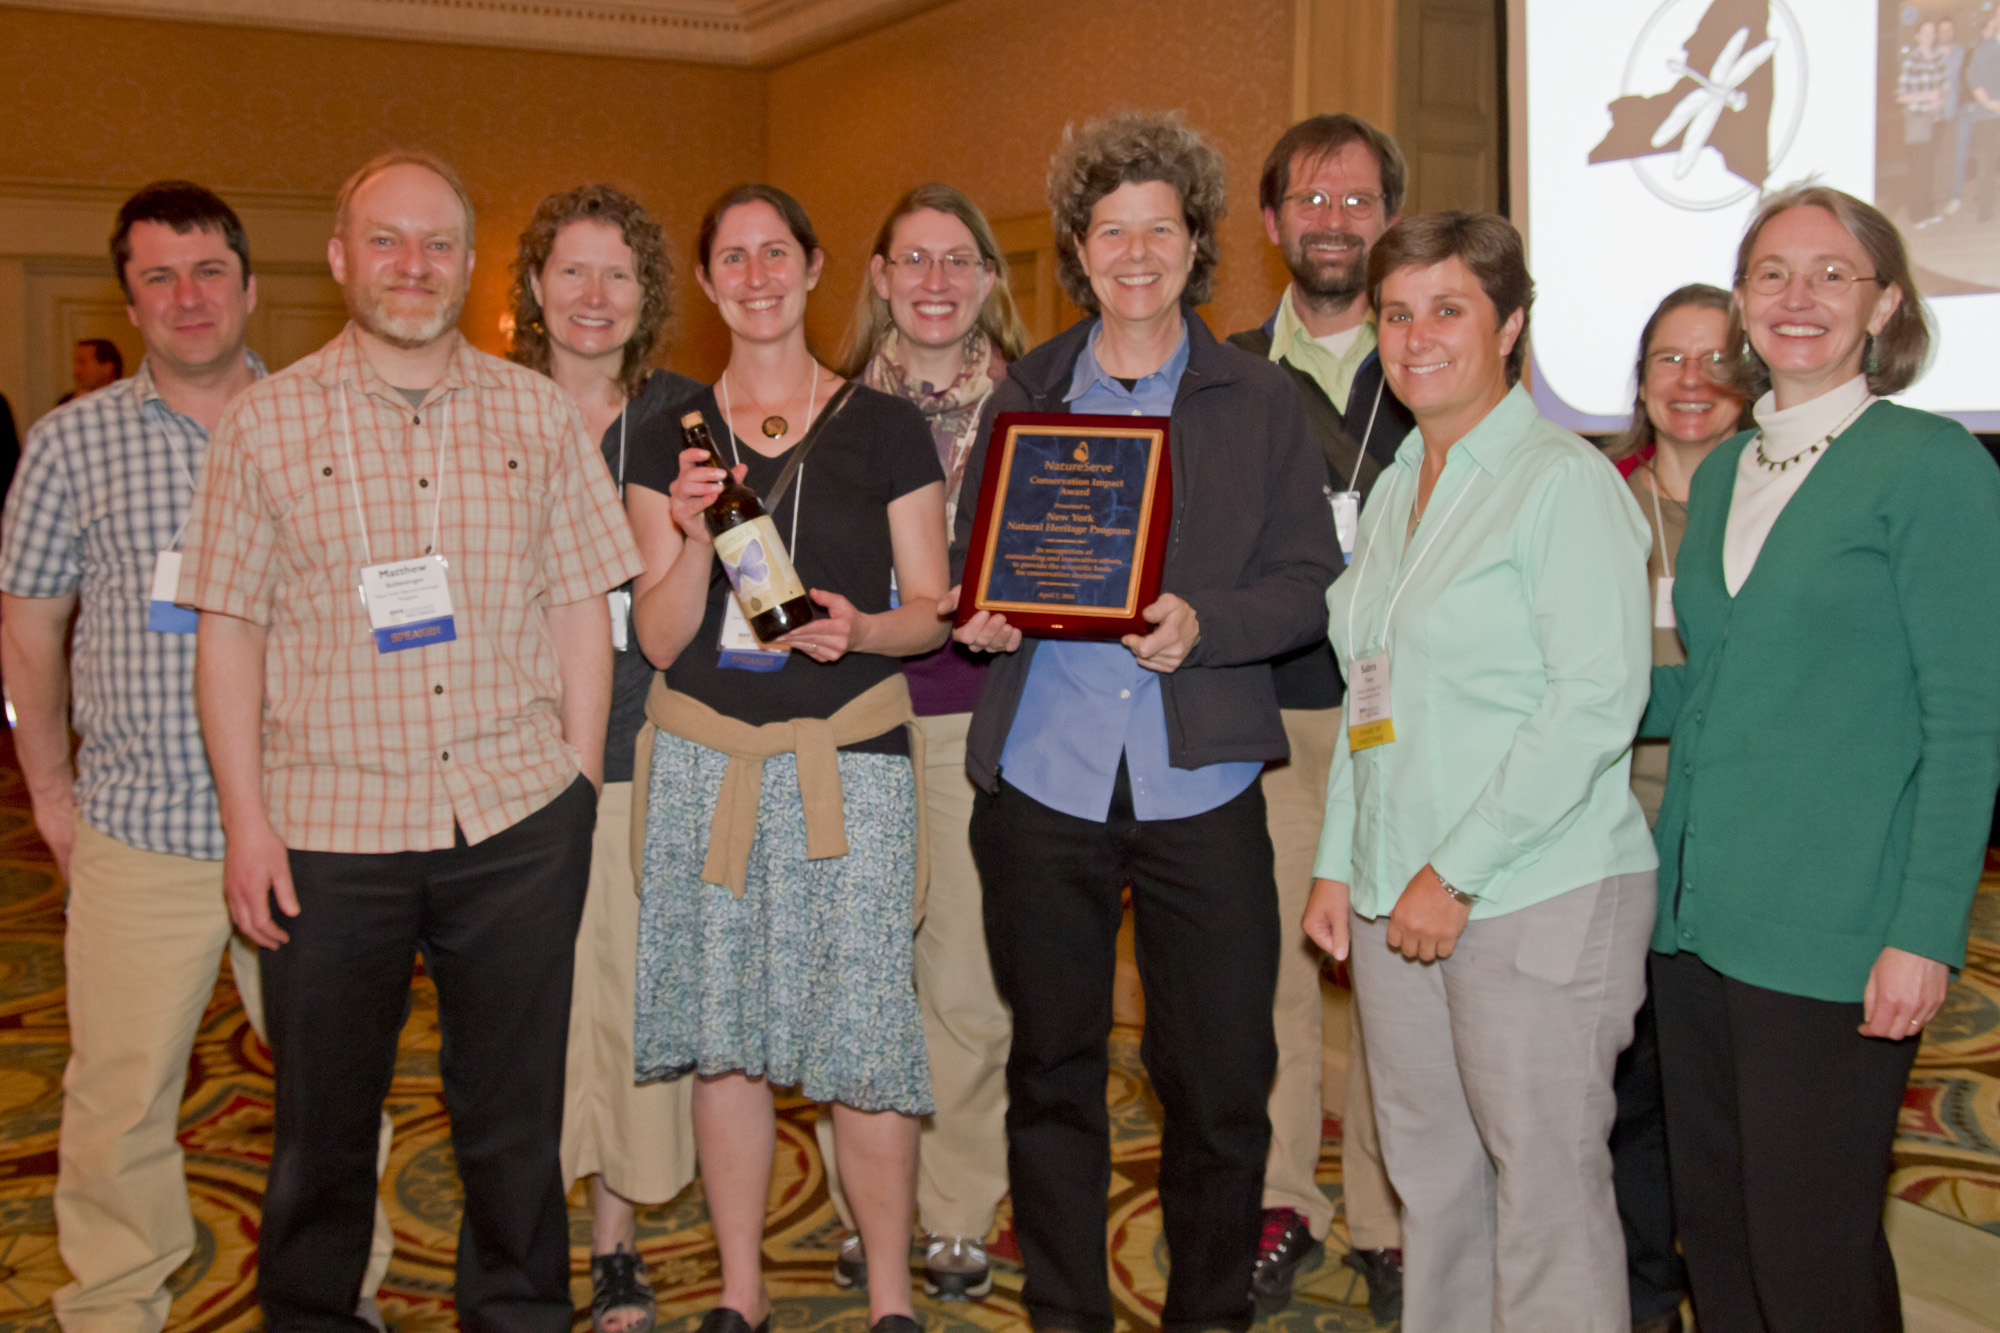 Scientists from the New York Natural Heritage Program receive NatureServe's 2014 Conservation Impact Award at a reception during the Biodiversity Without Boundaries annual conference, on April 7 in New Orleans.